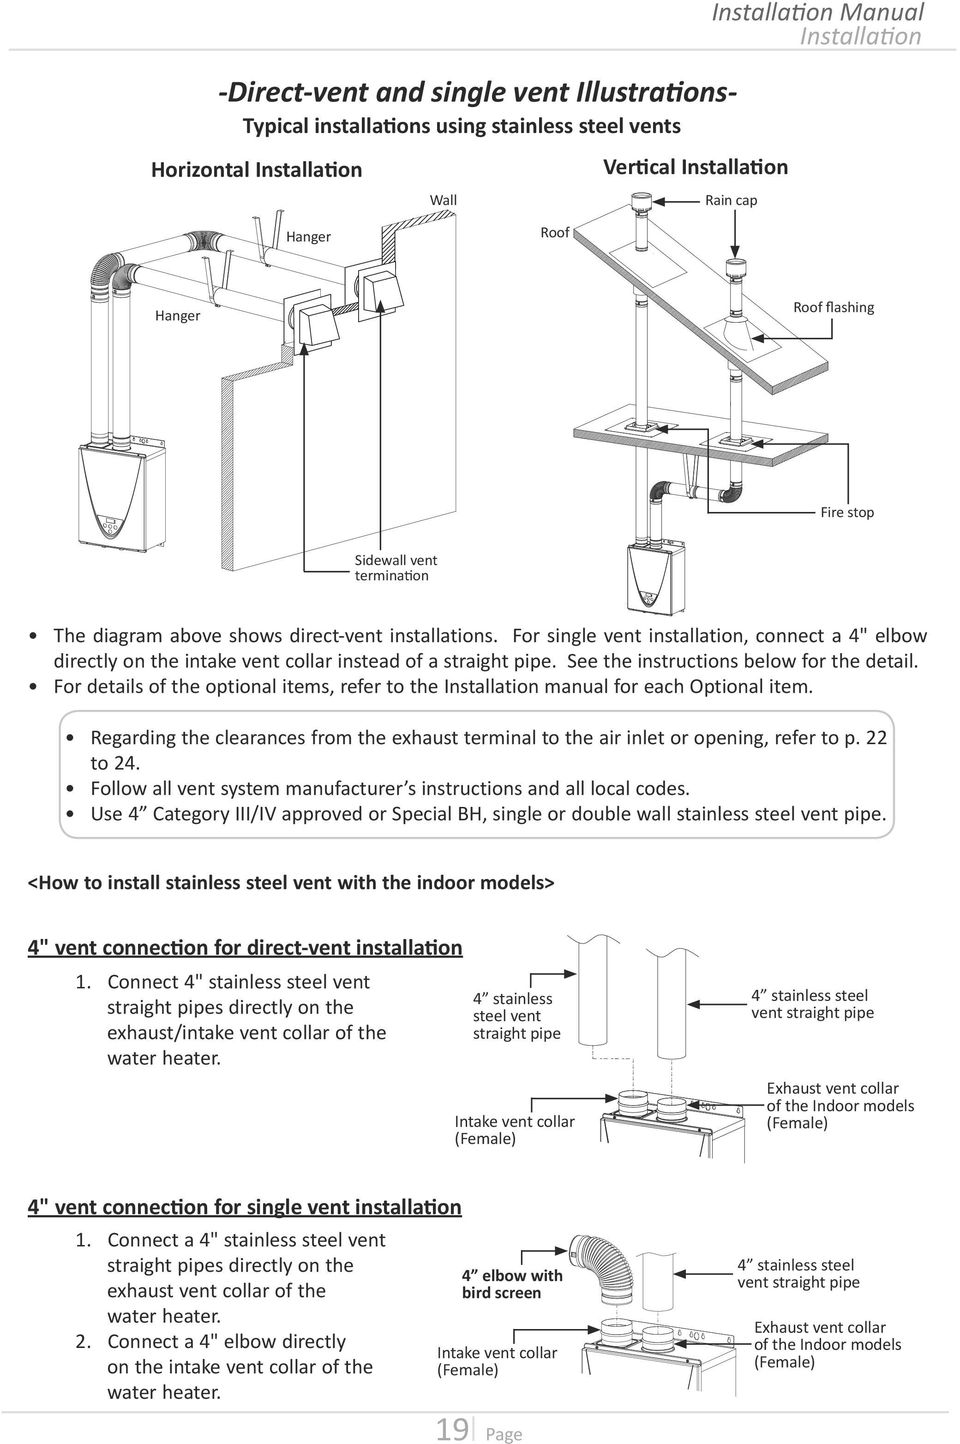 "For single vent installation, connect a 4"" elbow directly on the intake vent collar instead of a straight pipe. See the instructions below for the detail."